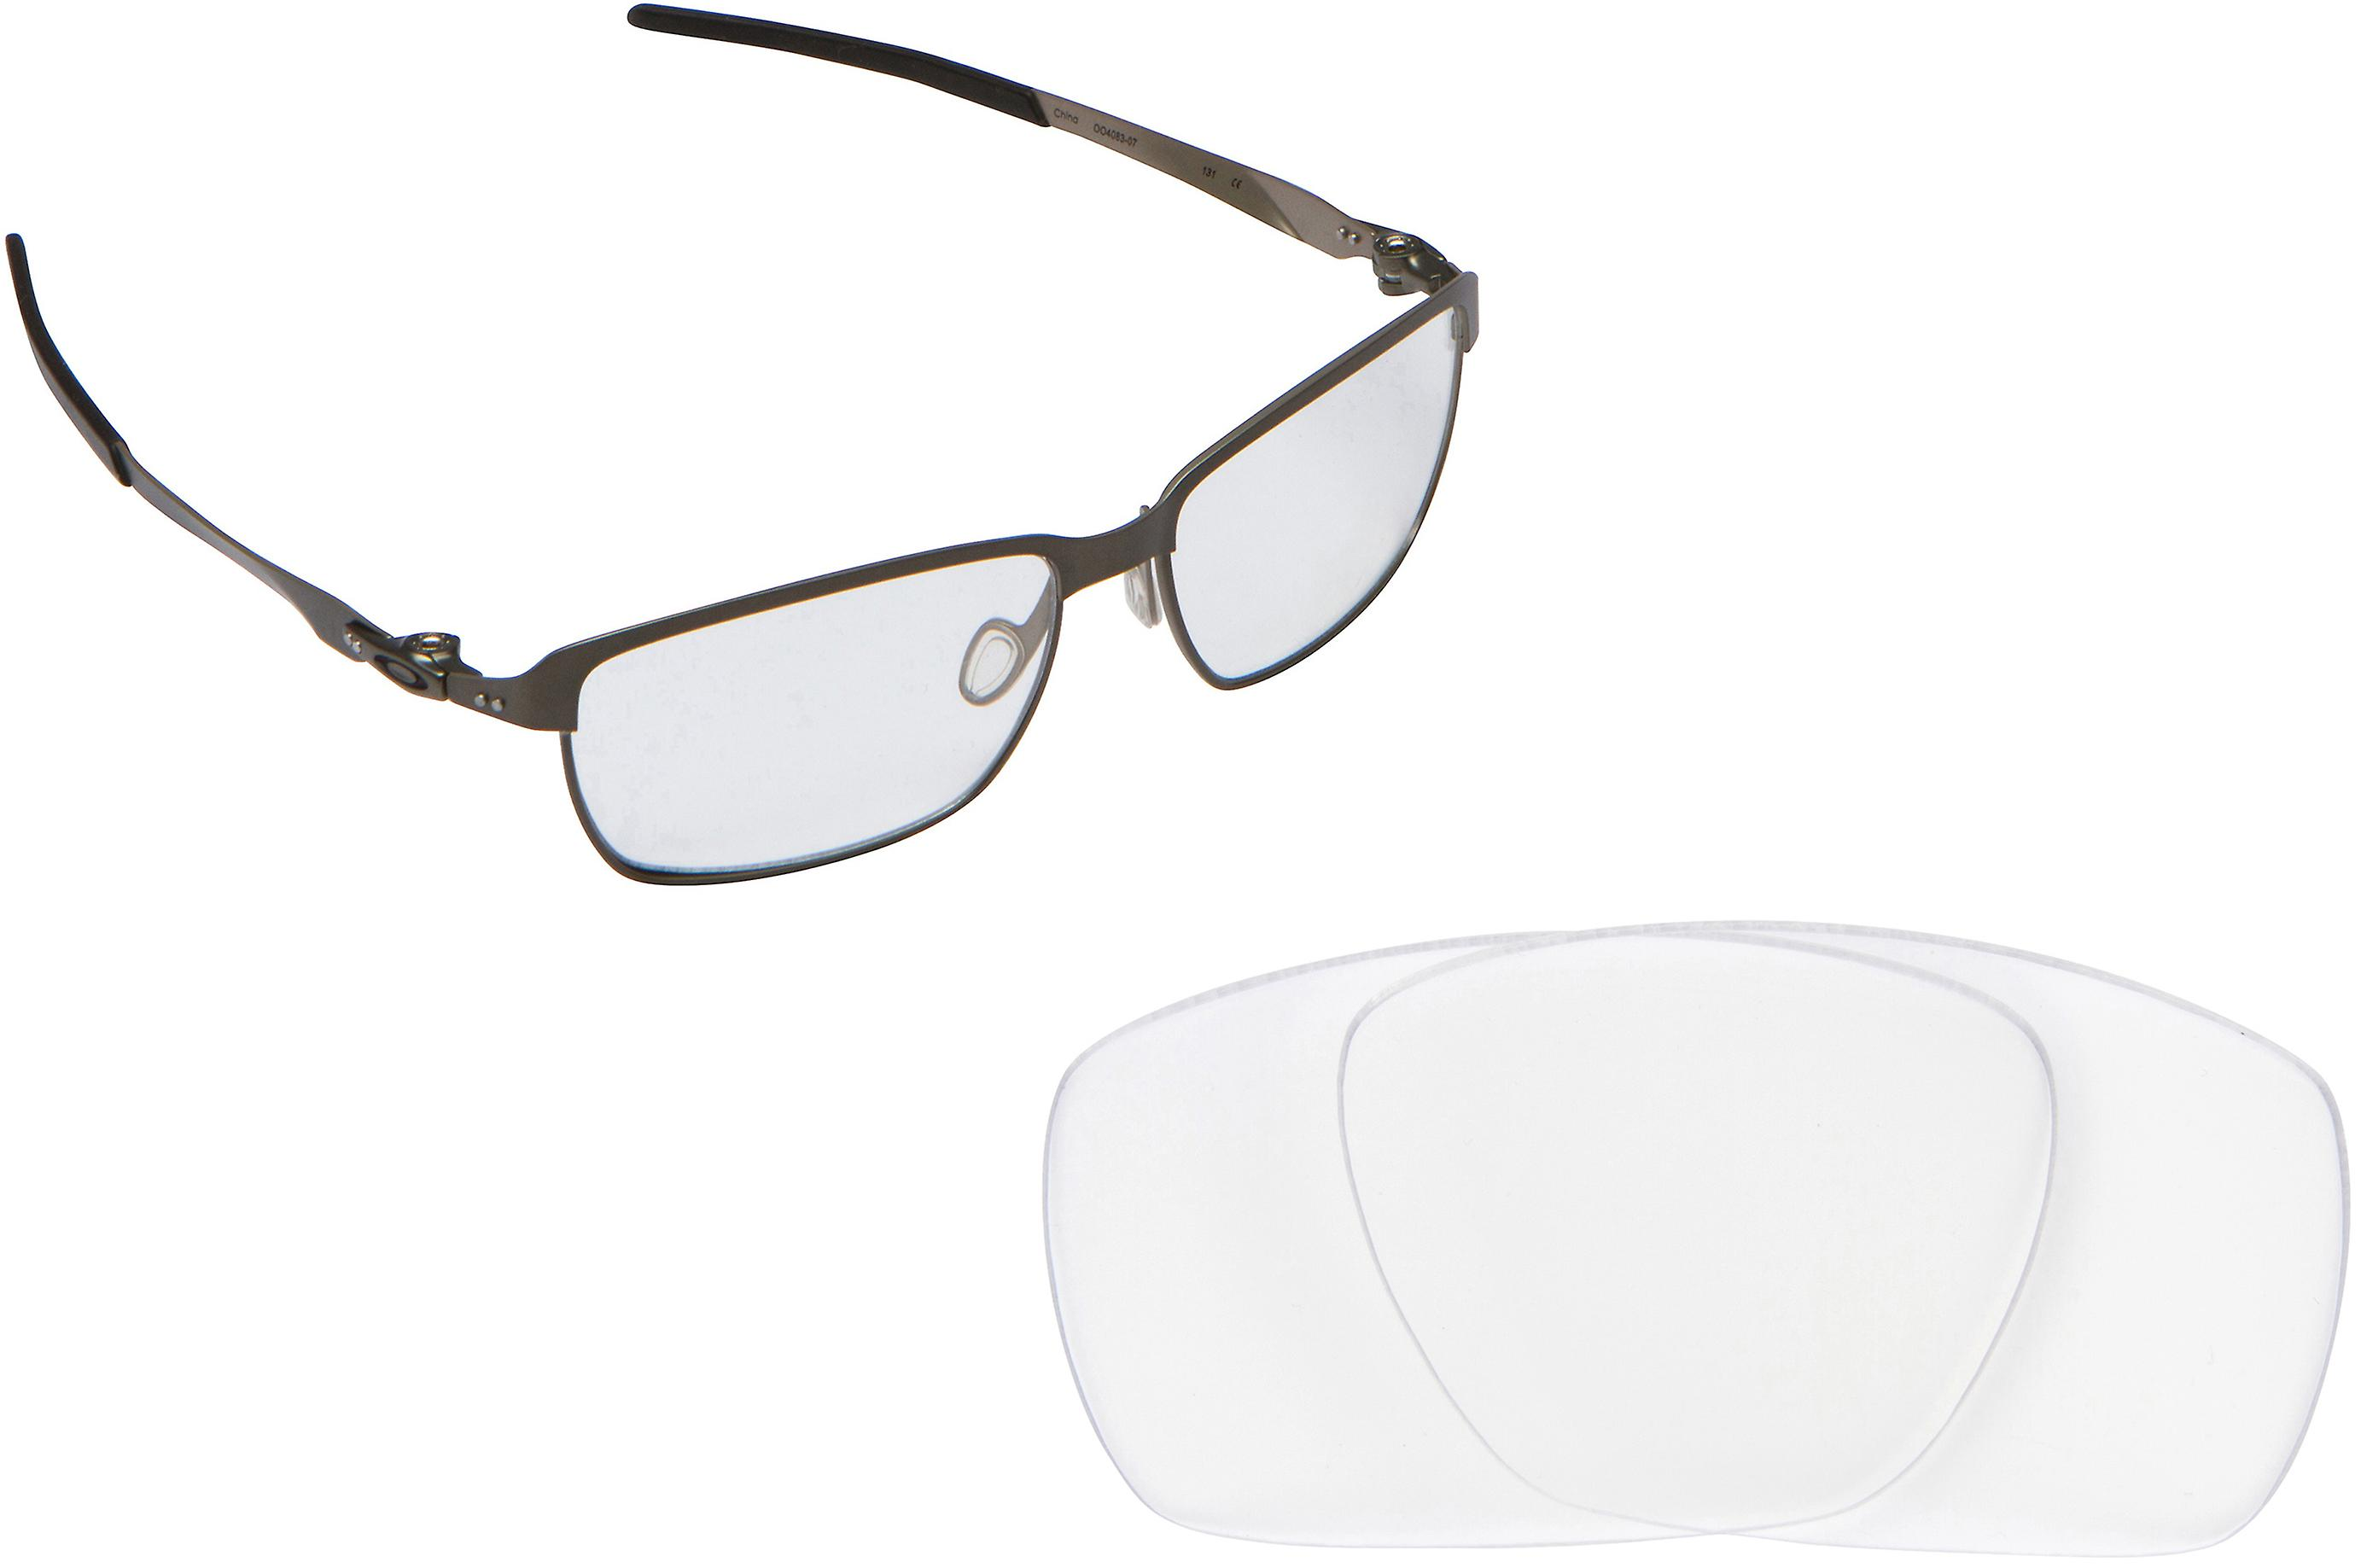 2c669edf948 TINFOIL CARBON Replacement Lenses Crystal Clear by SEEK fits OAKLEY  Sunglasses